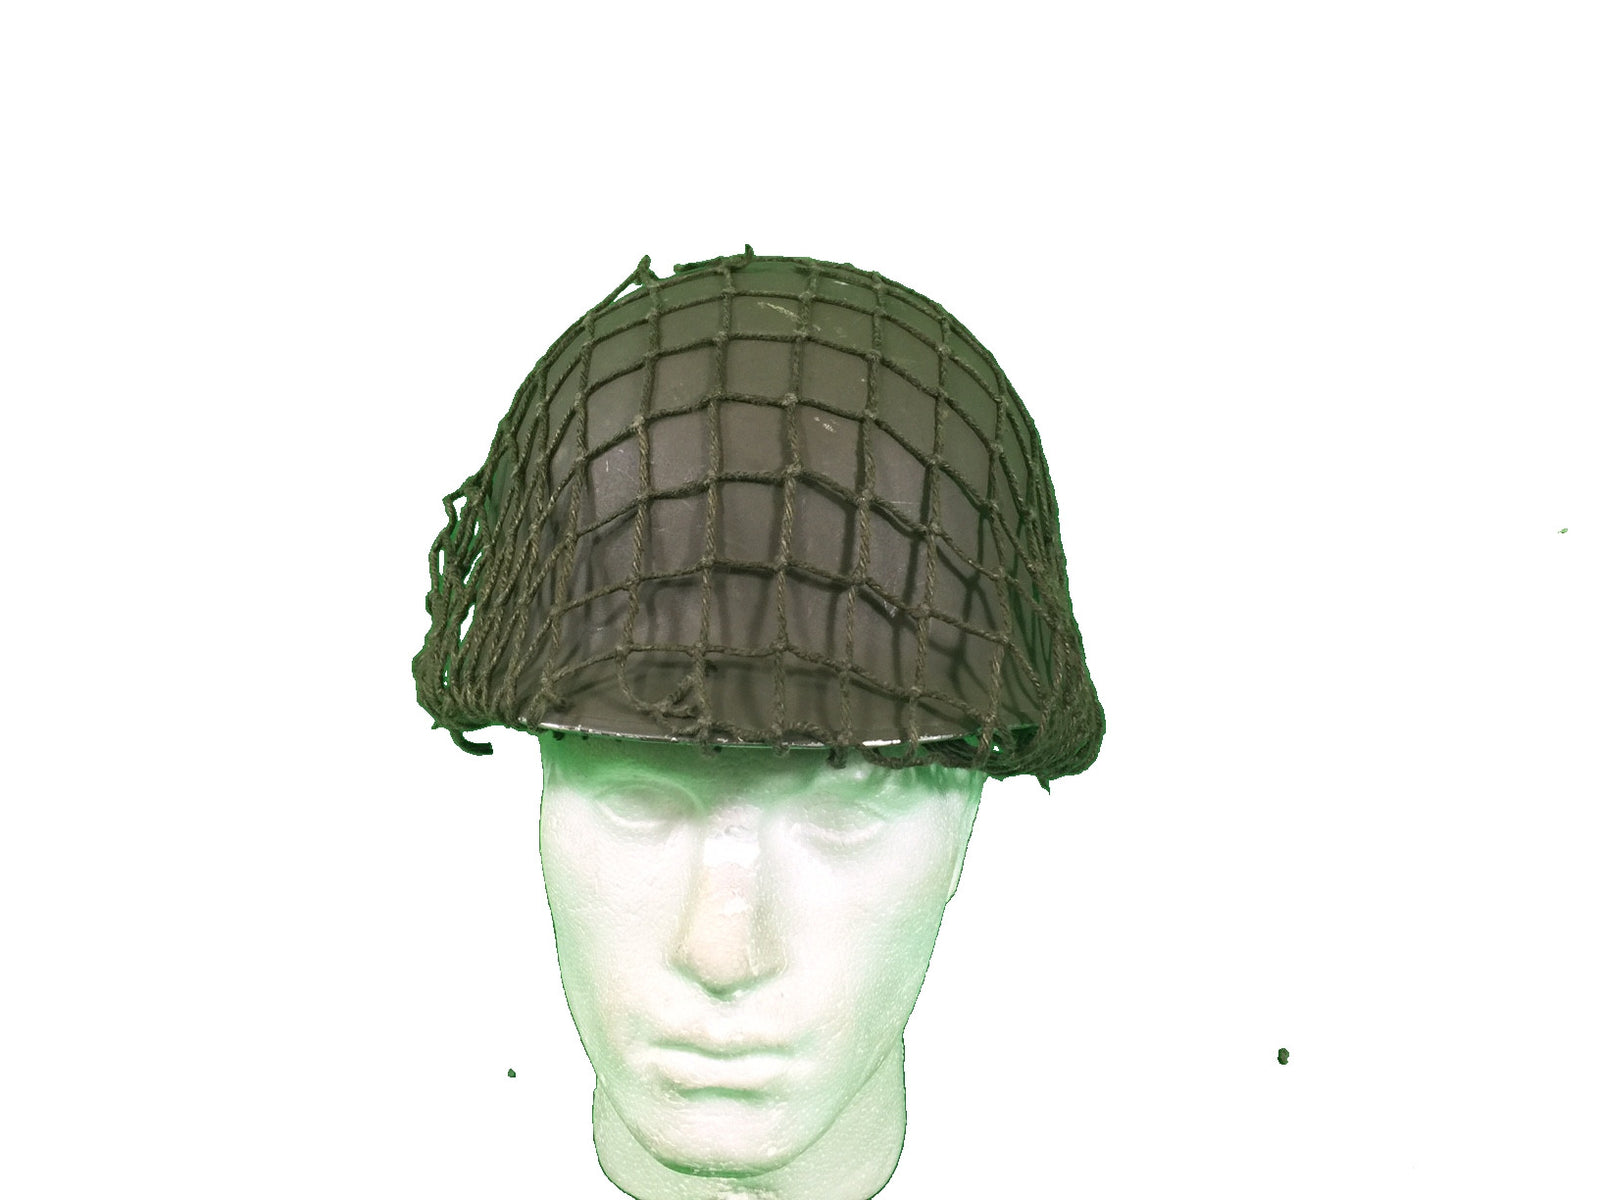 Austrian m1 helmet complete with netting